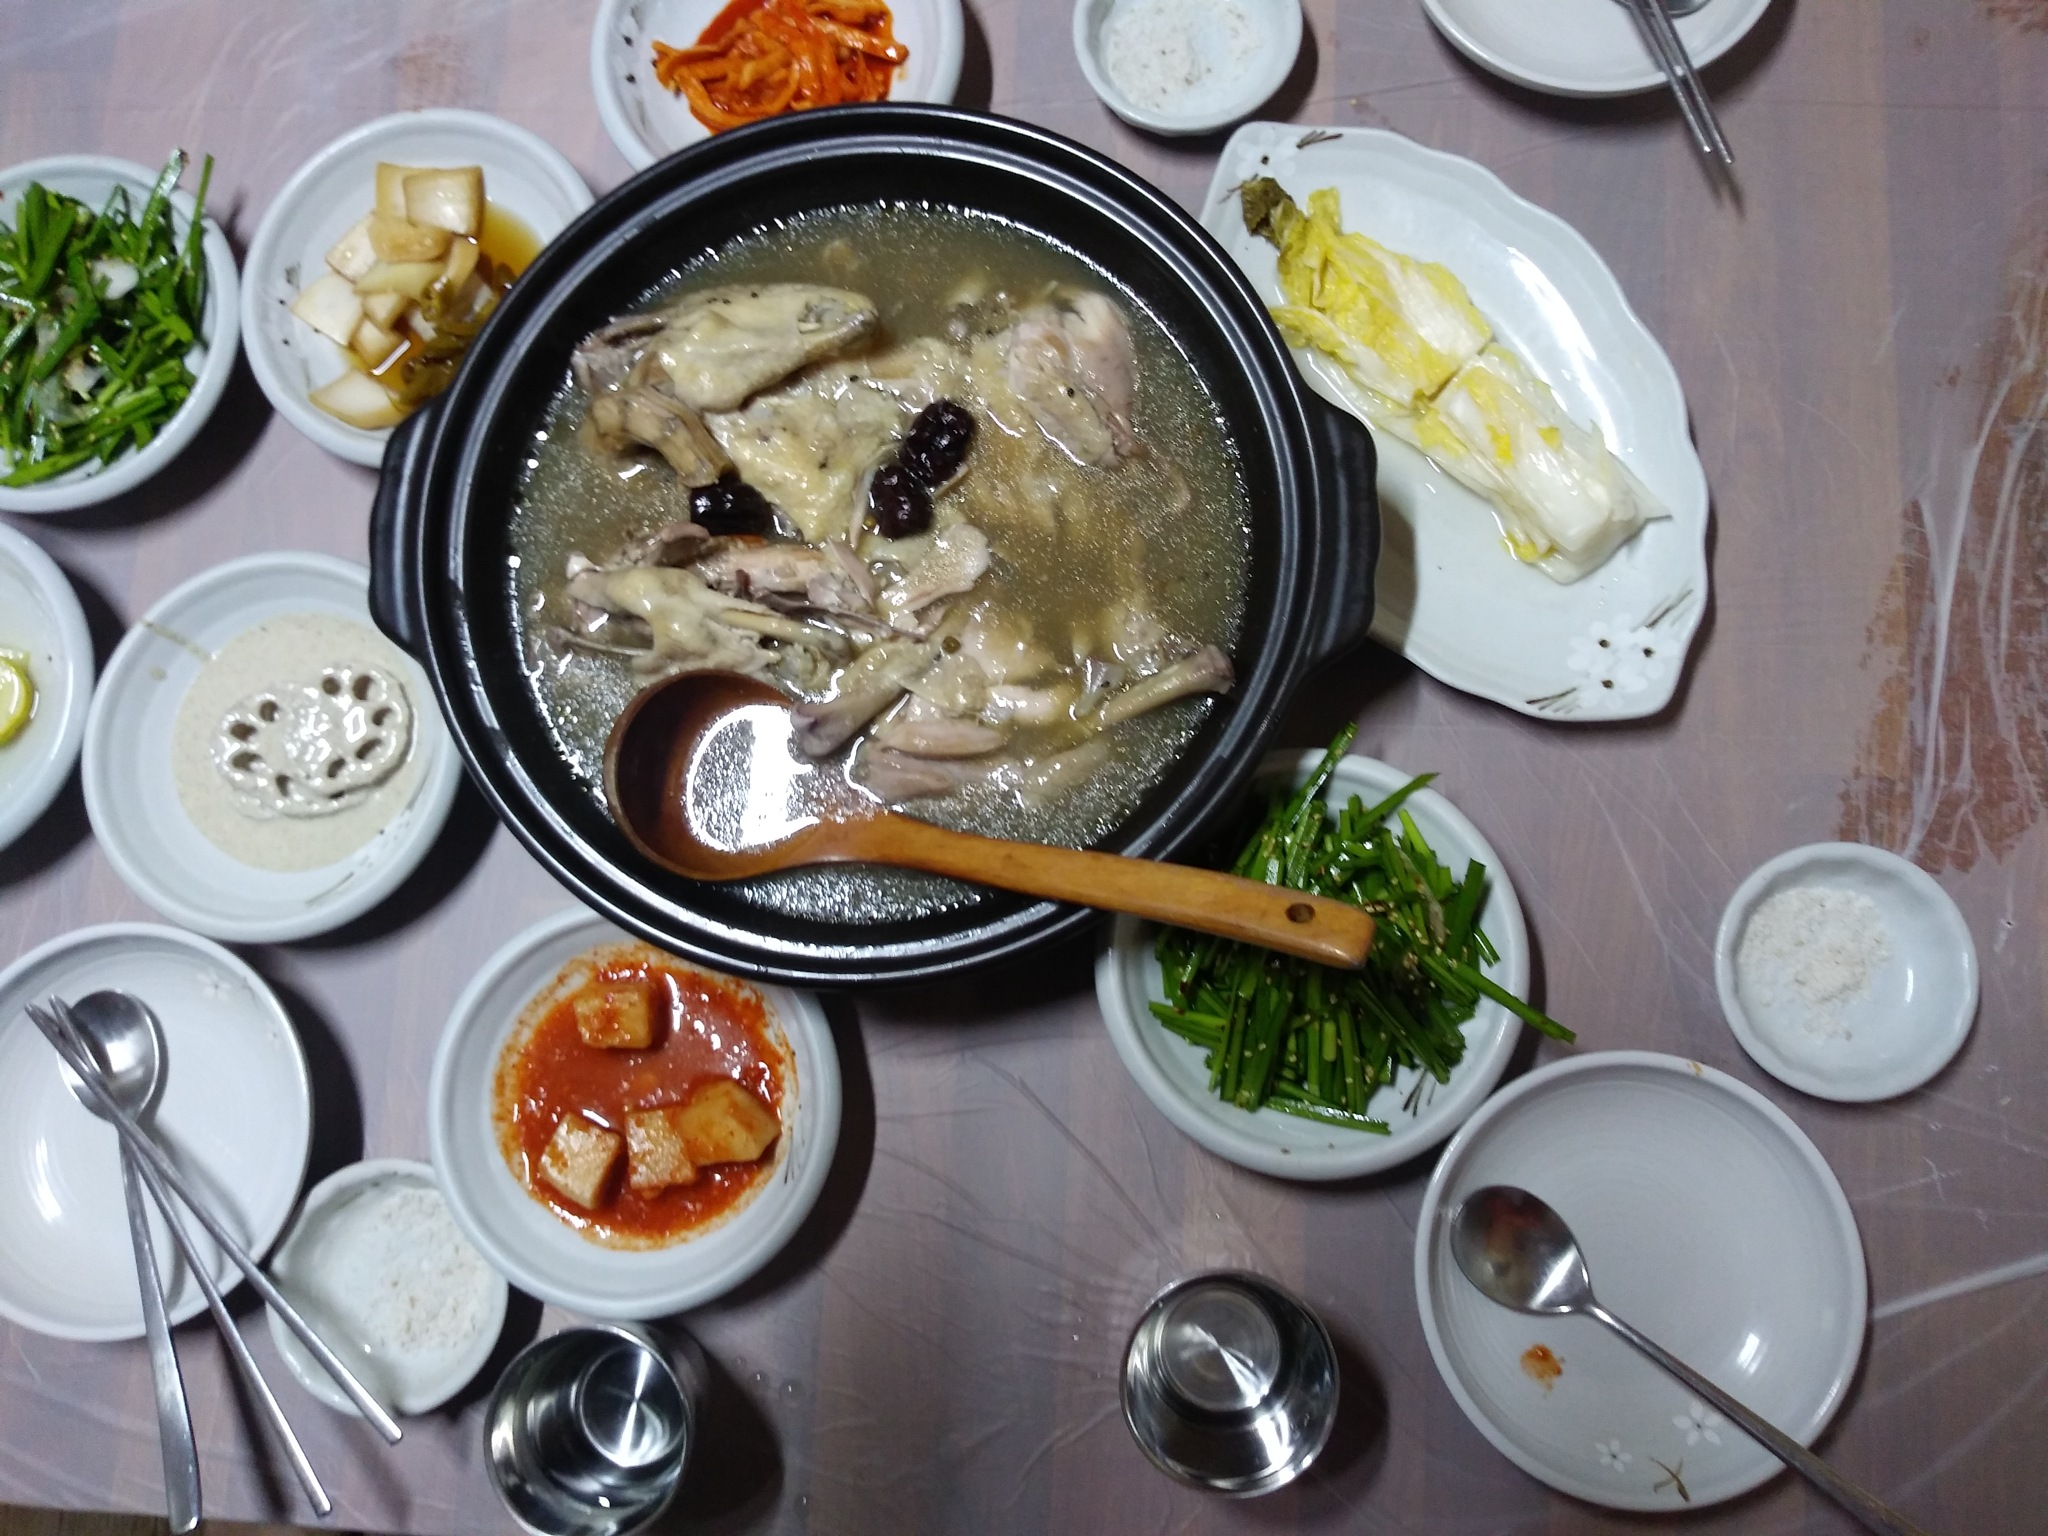 samgyetang by park seong hyeon